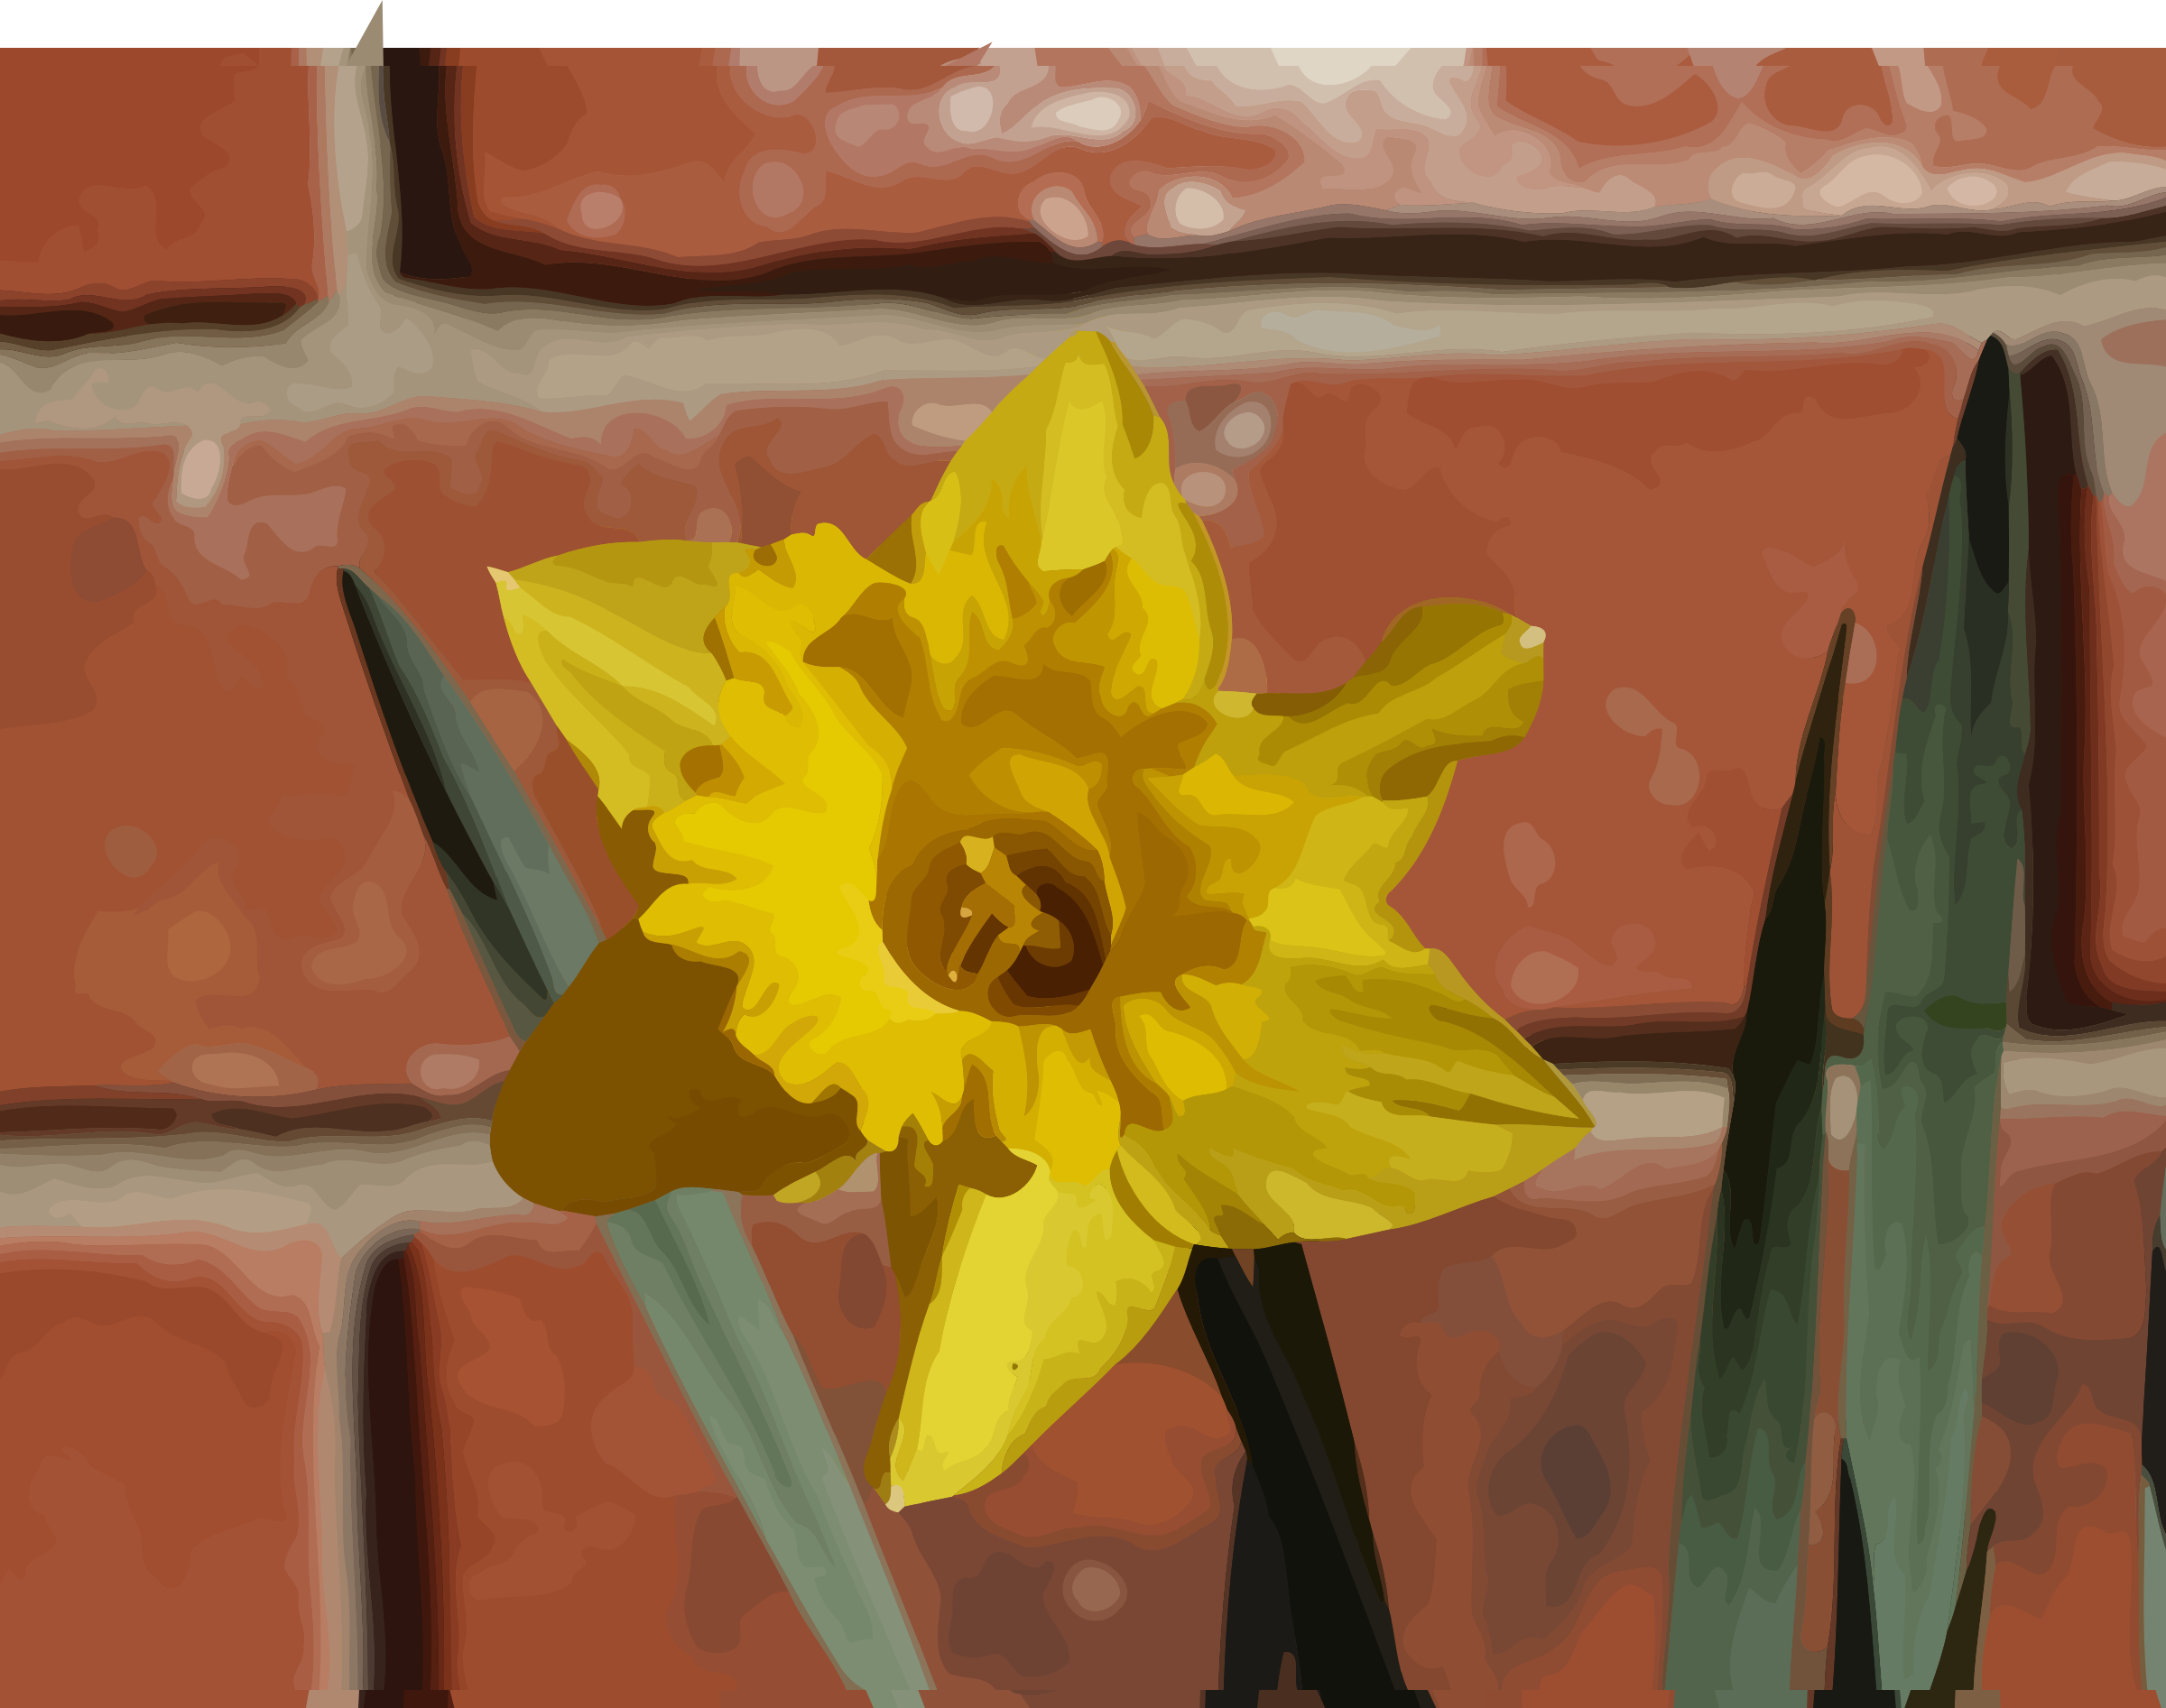 daffodils-06 by datteber